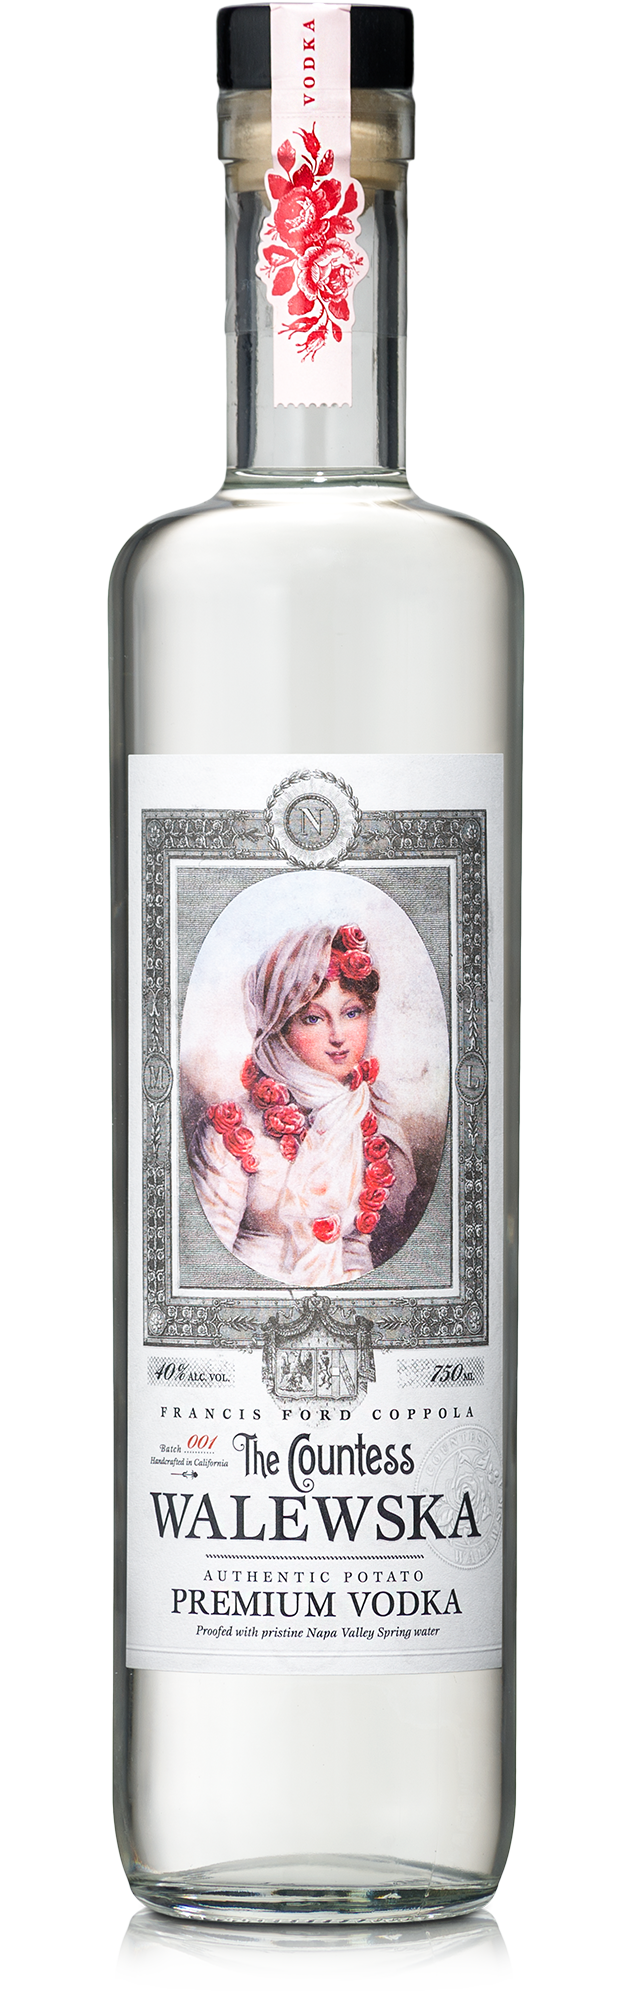 A bottle of The Countess Walewksa Vodka.